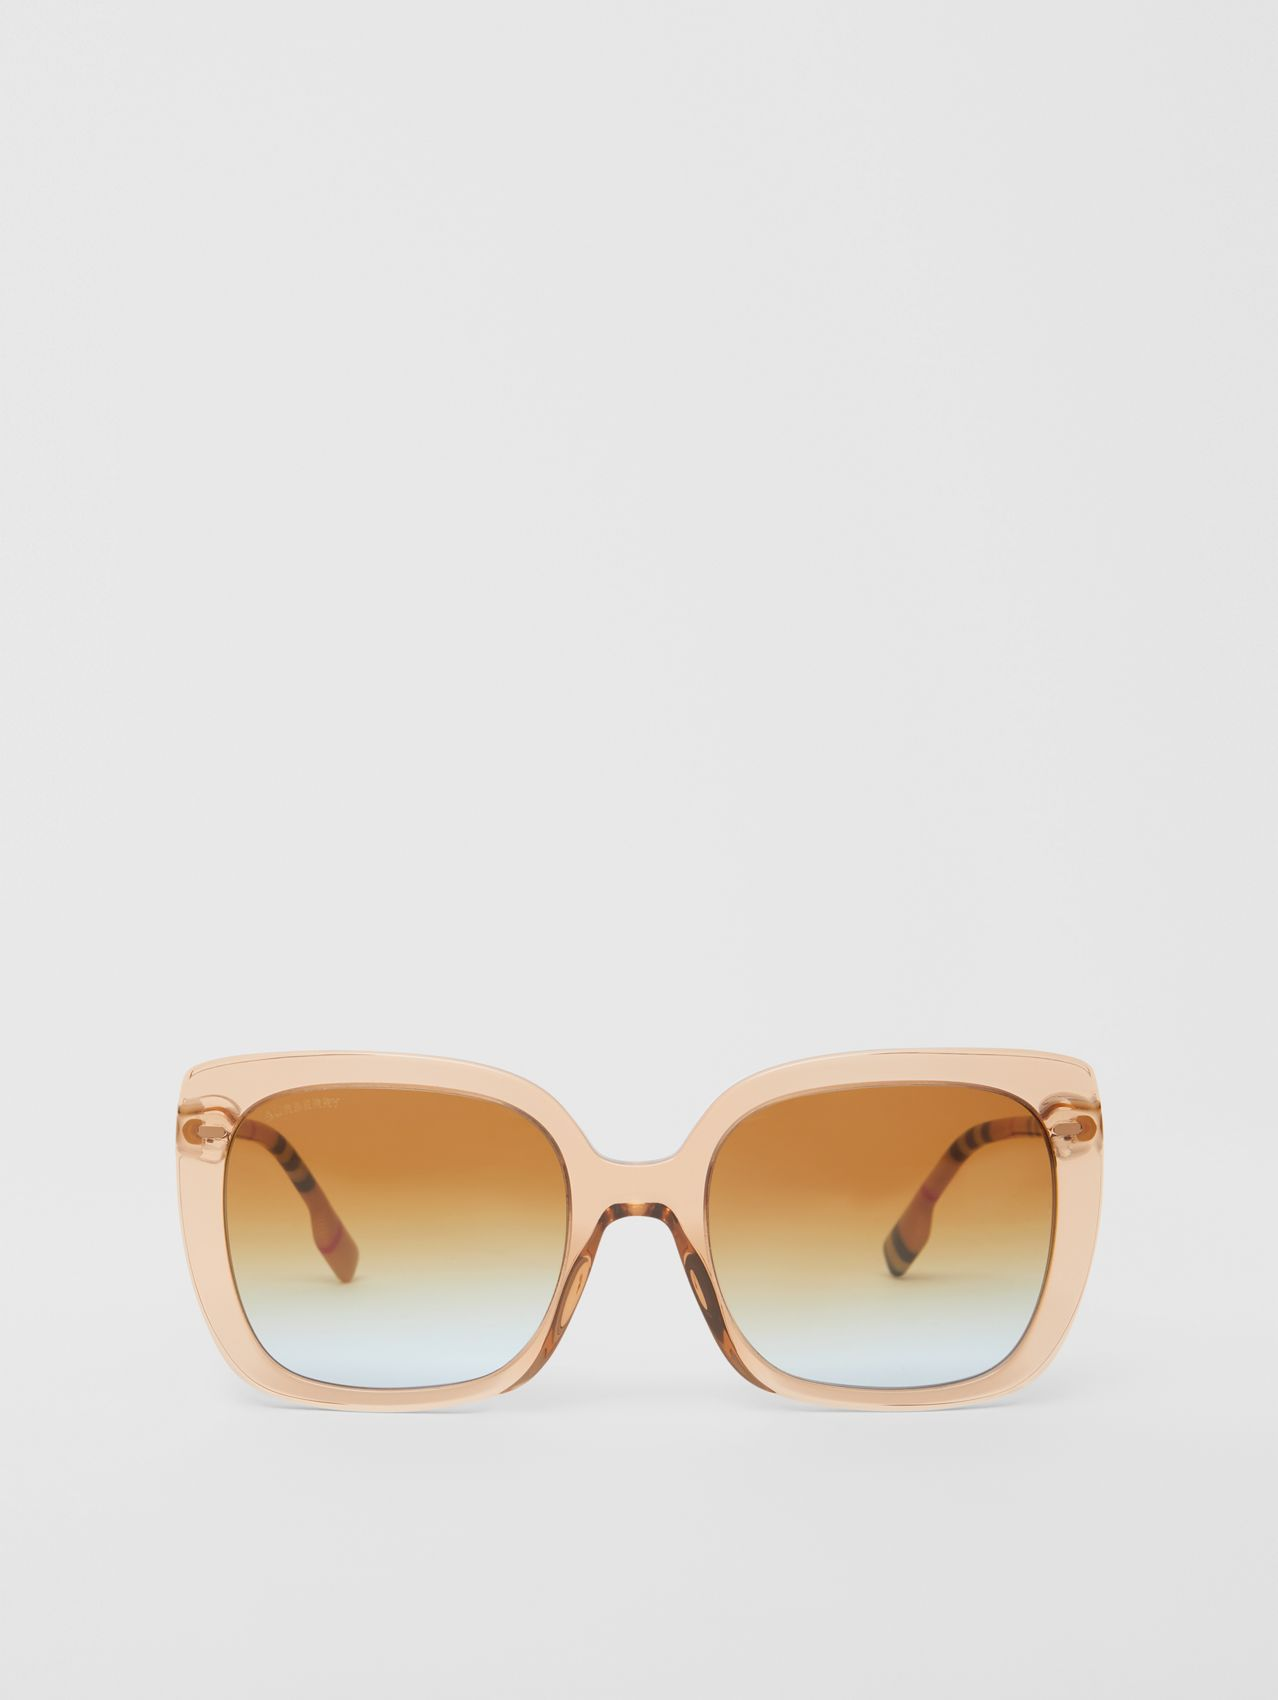 Oversized Square Frame Sunglasses in Peach